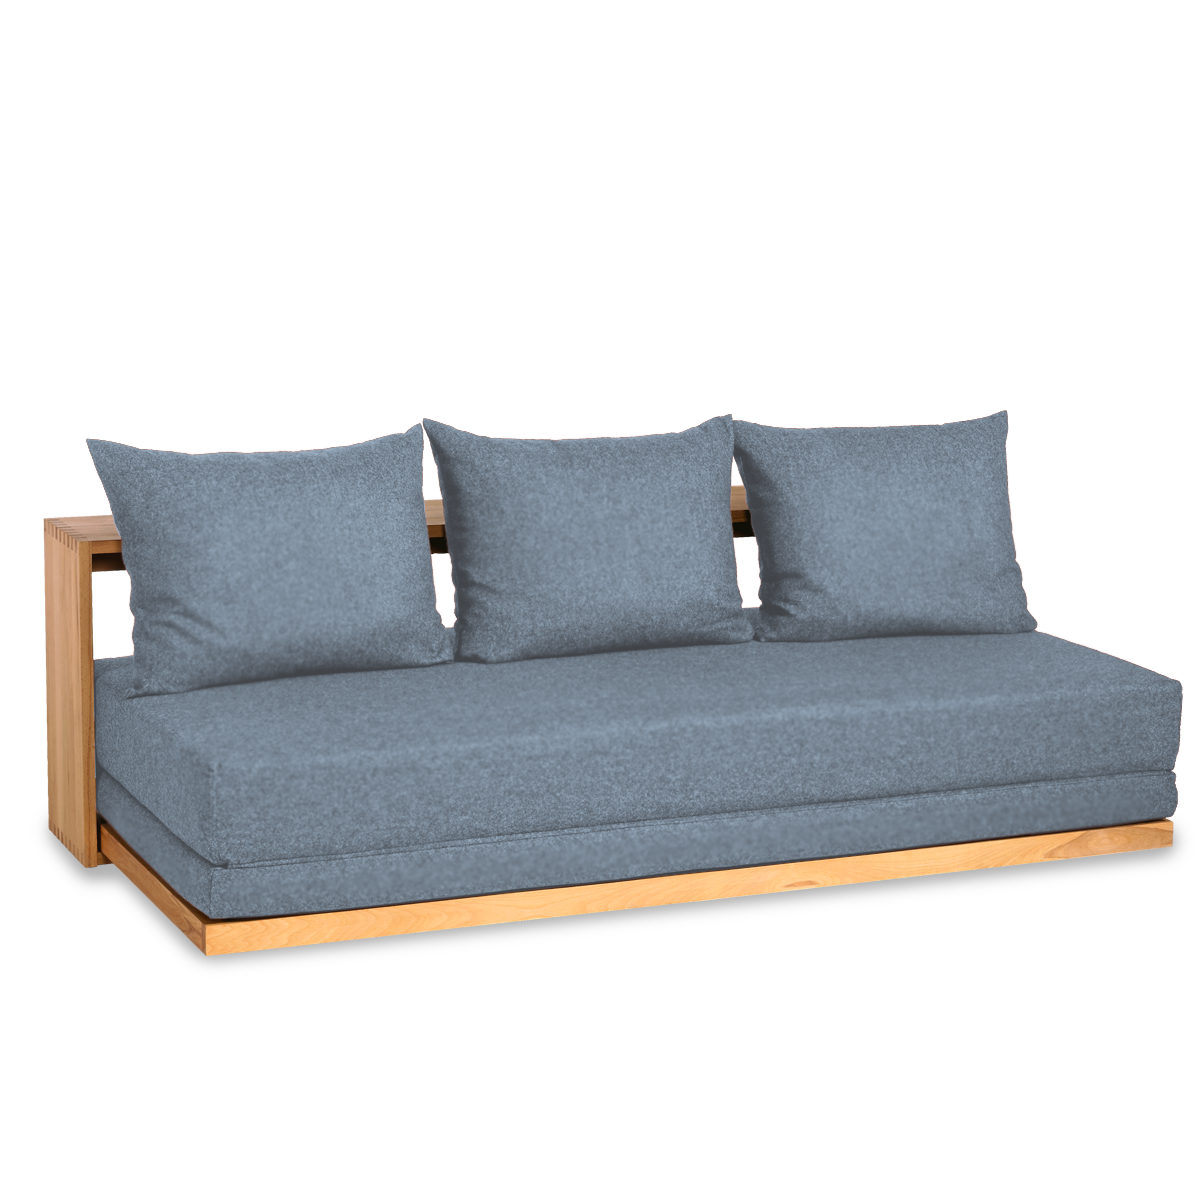 Bettsofa Stefano 180x200 Cm Grune Erde Furniture Sofa Couch